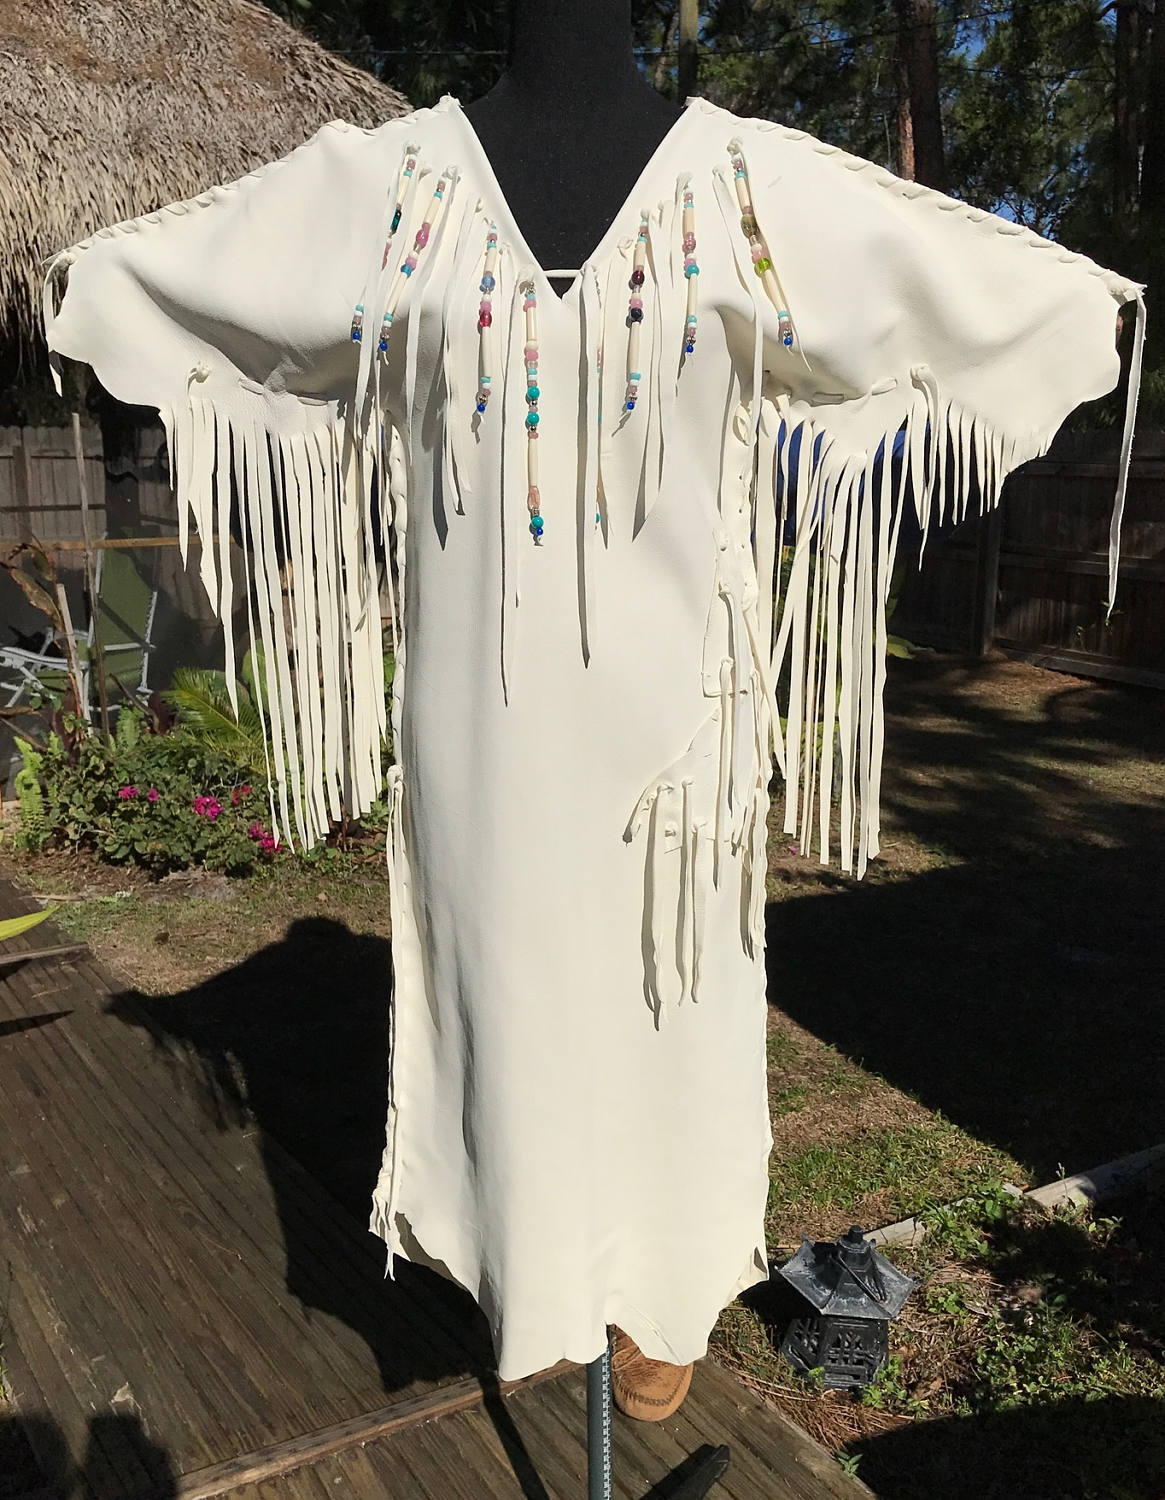 2 native american wedding dress Deerskin Leather Wedding Dress Native American Style Leather Dress With Fringe and Beads Rustic